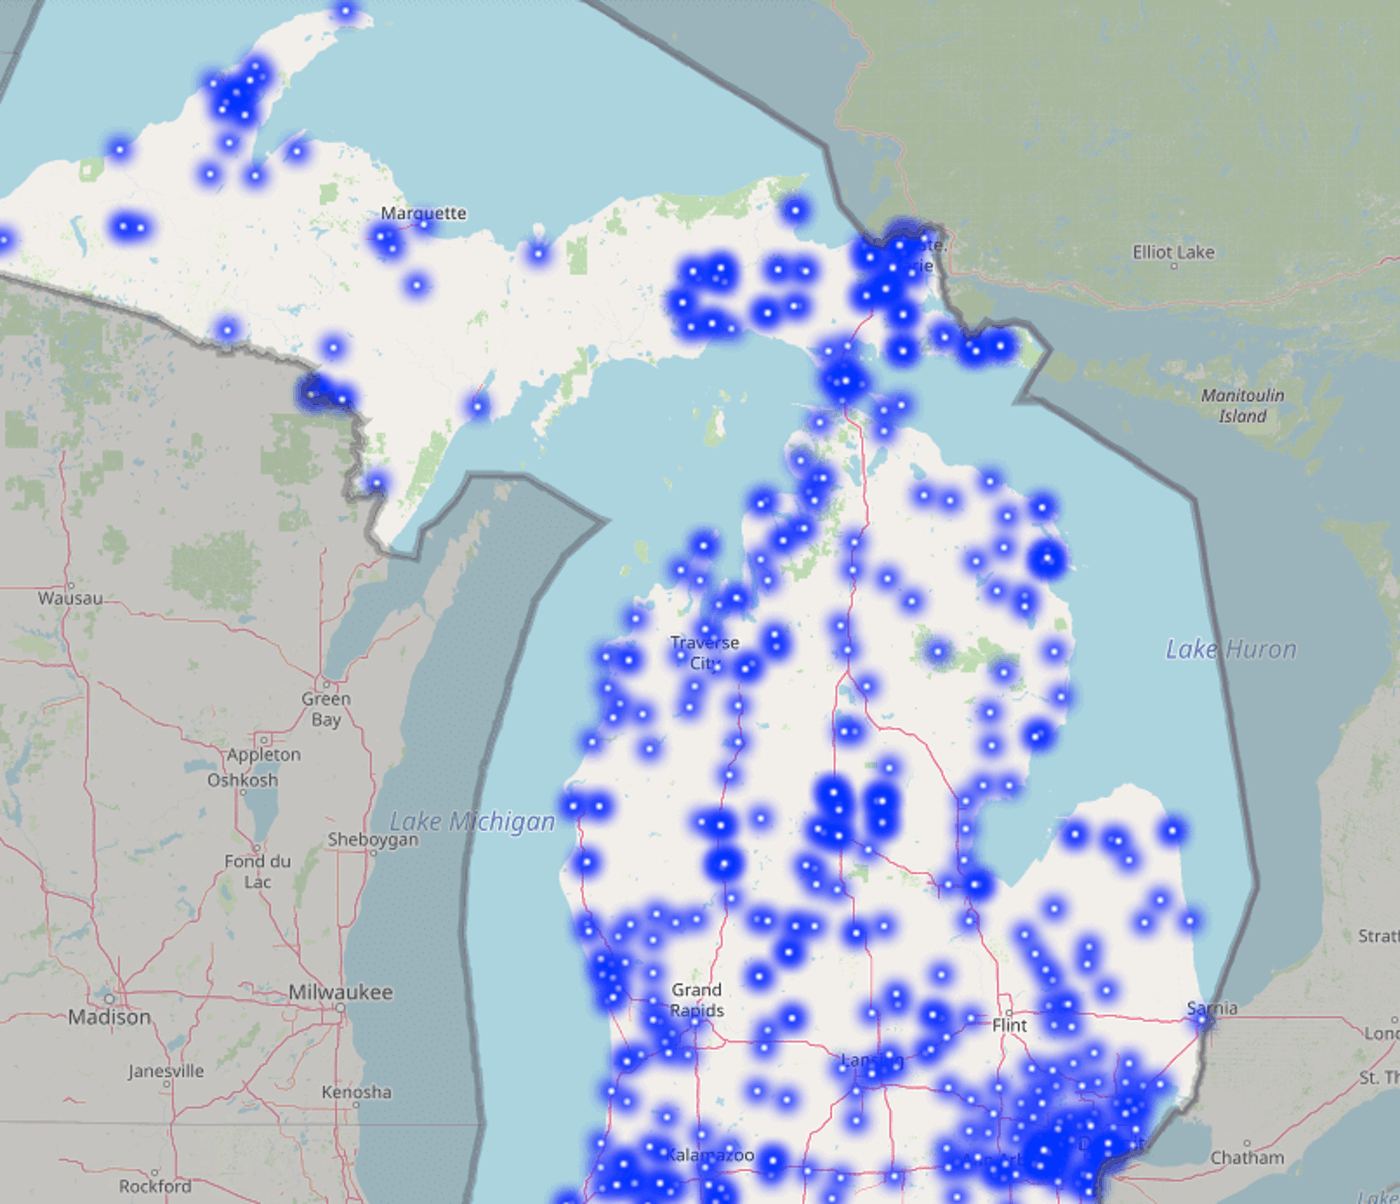 The State of Michigan's new online map of free Wi-Fi hotspots (Image via Connected Nation Michigan)